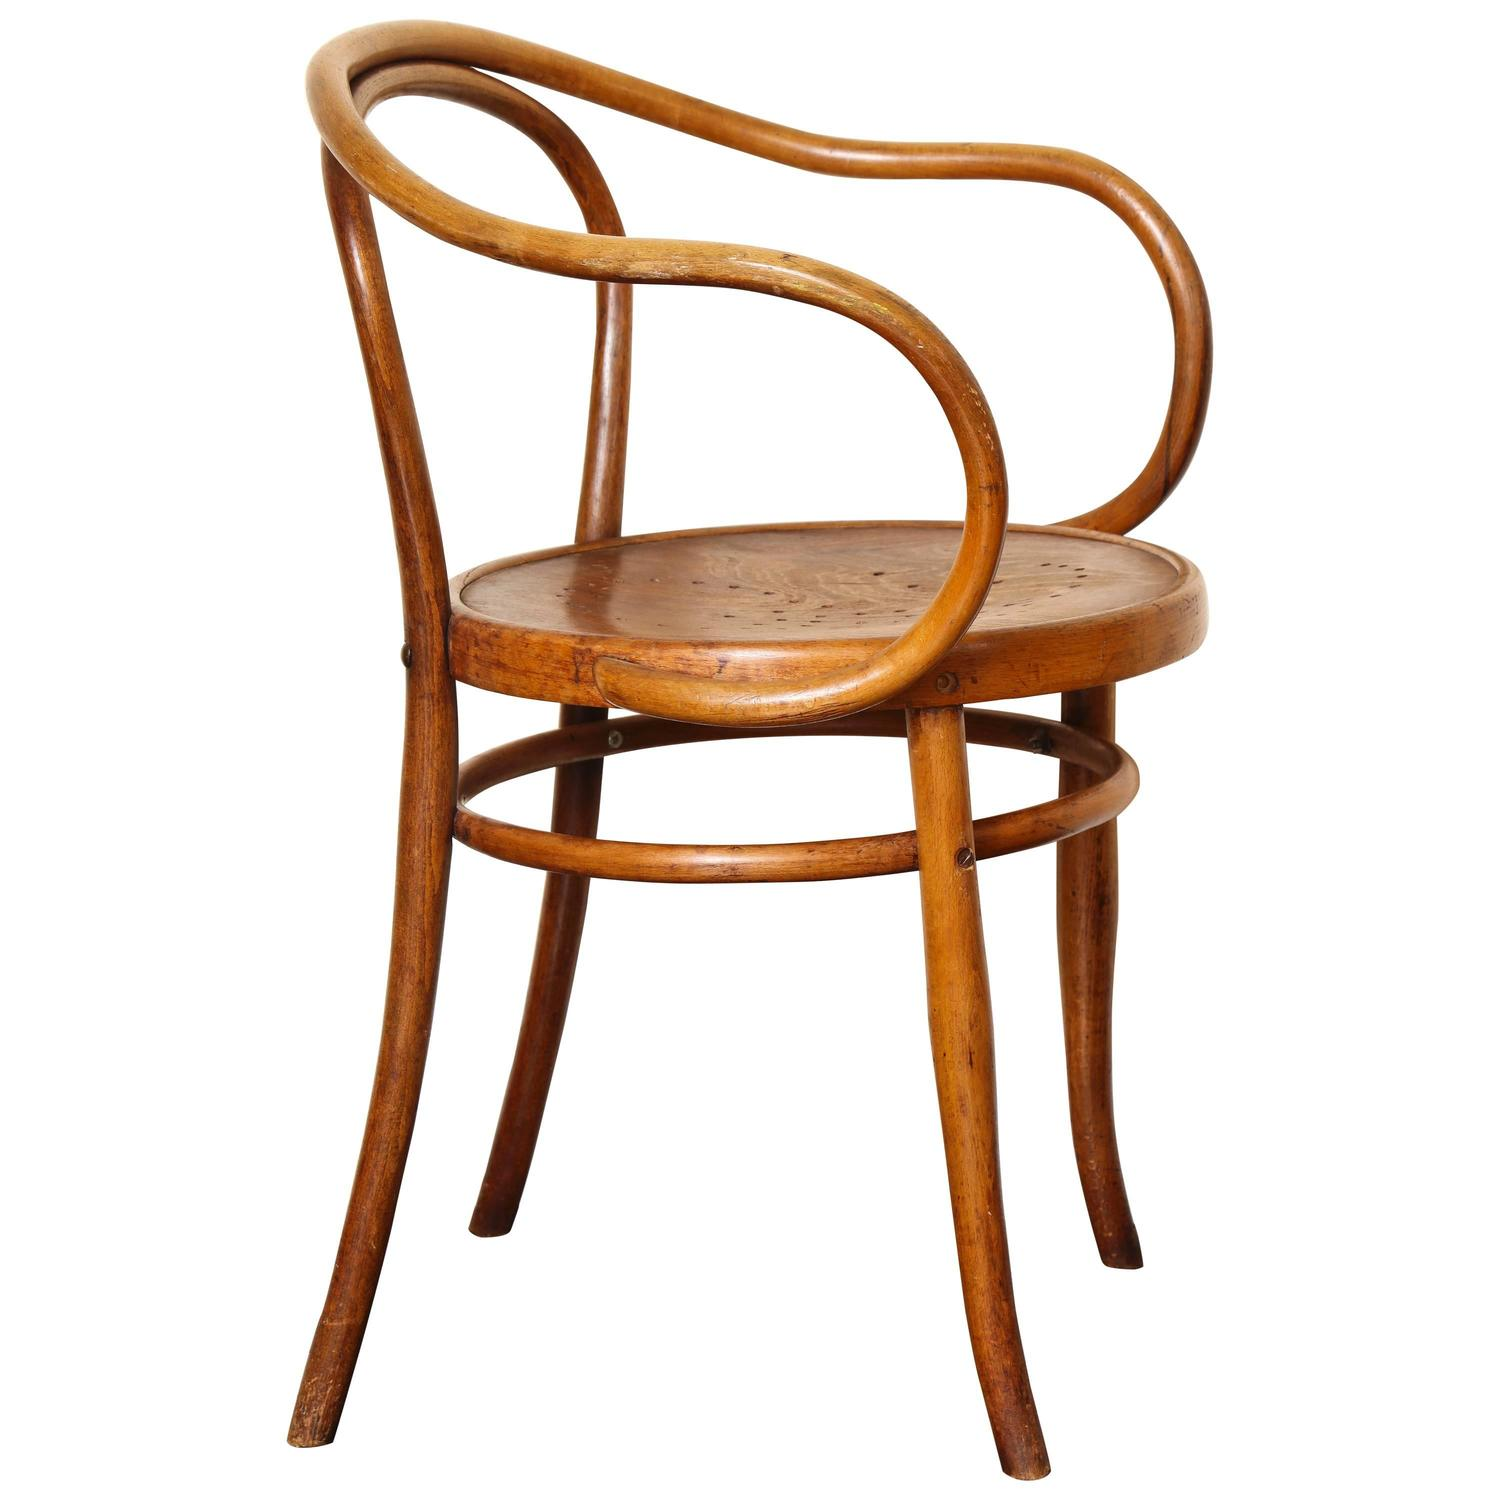 Bentwood B 9 Chair By Michael Thonet, Manufactured By Jacob And Josef Kohn  For Sale At 1stdibs